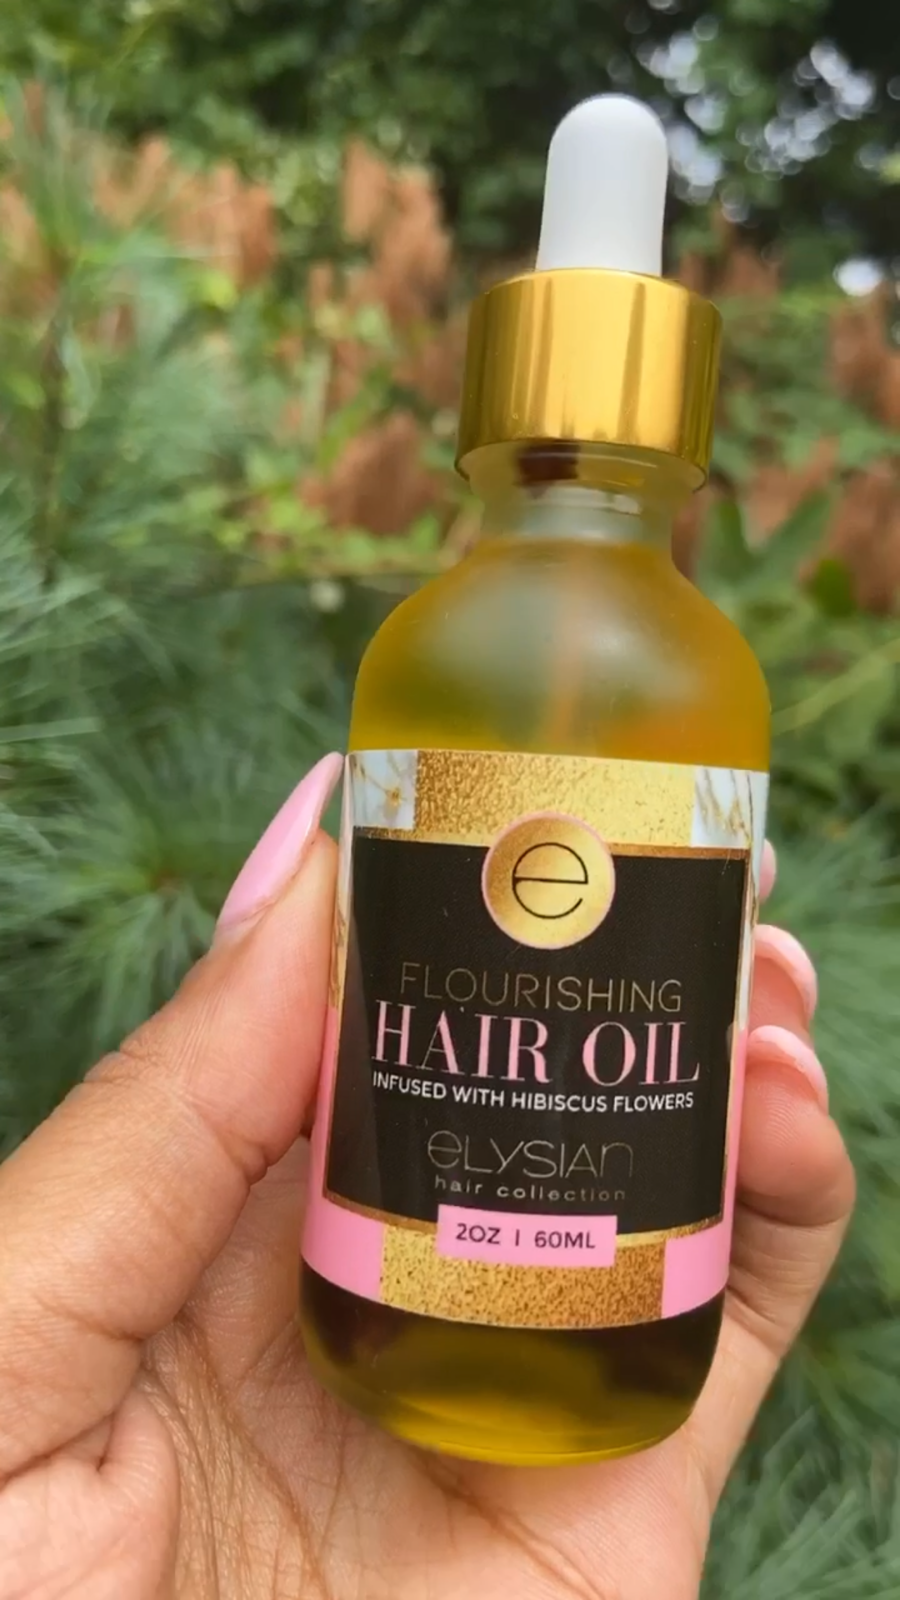 Flourishing Hair Oil-hausofelysian.com